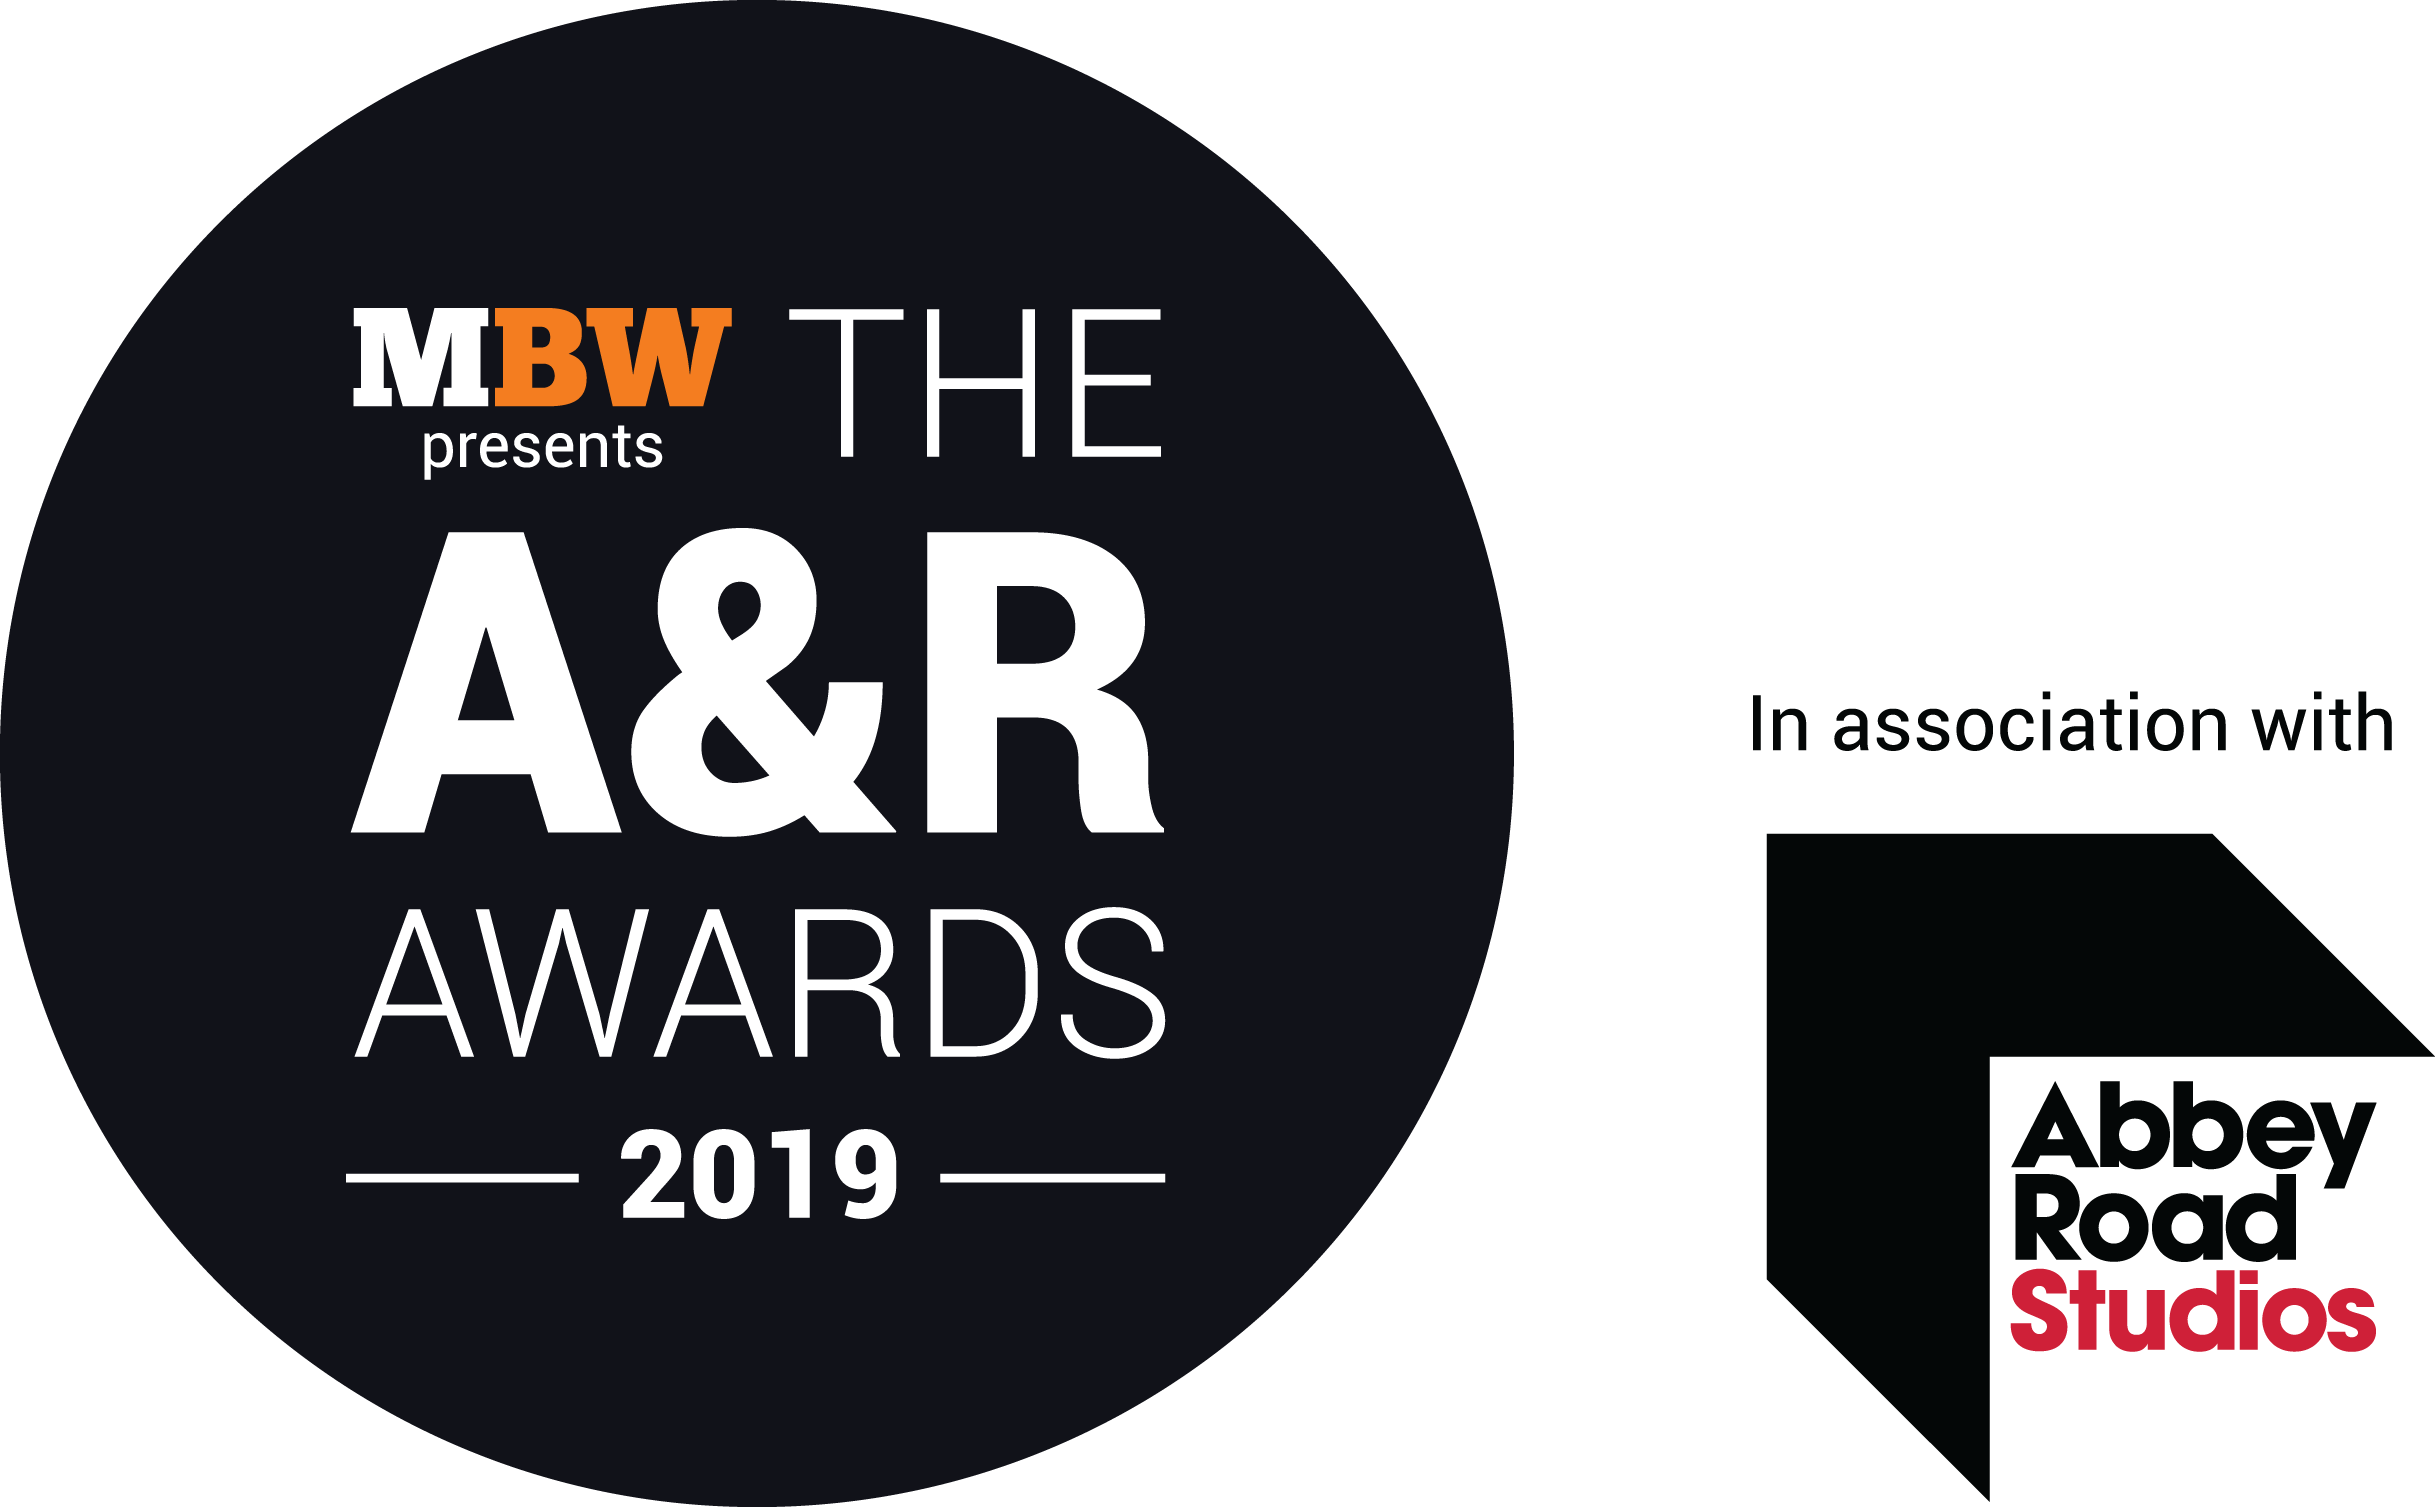 A&R Awards - In Association with Abbey Road Studios